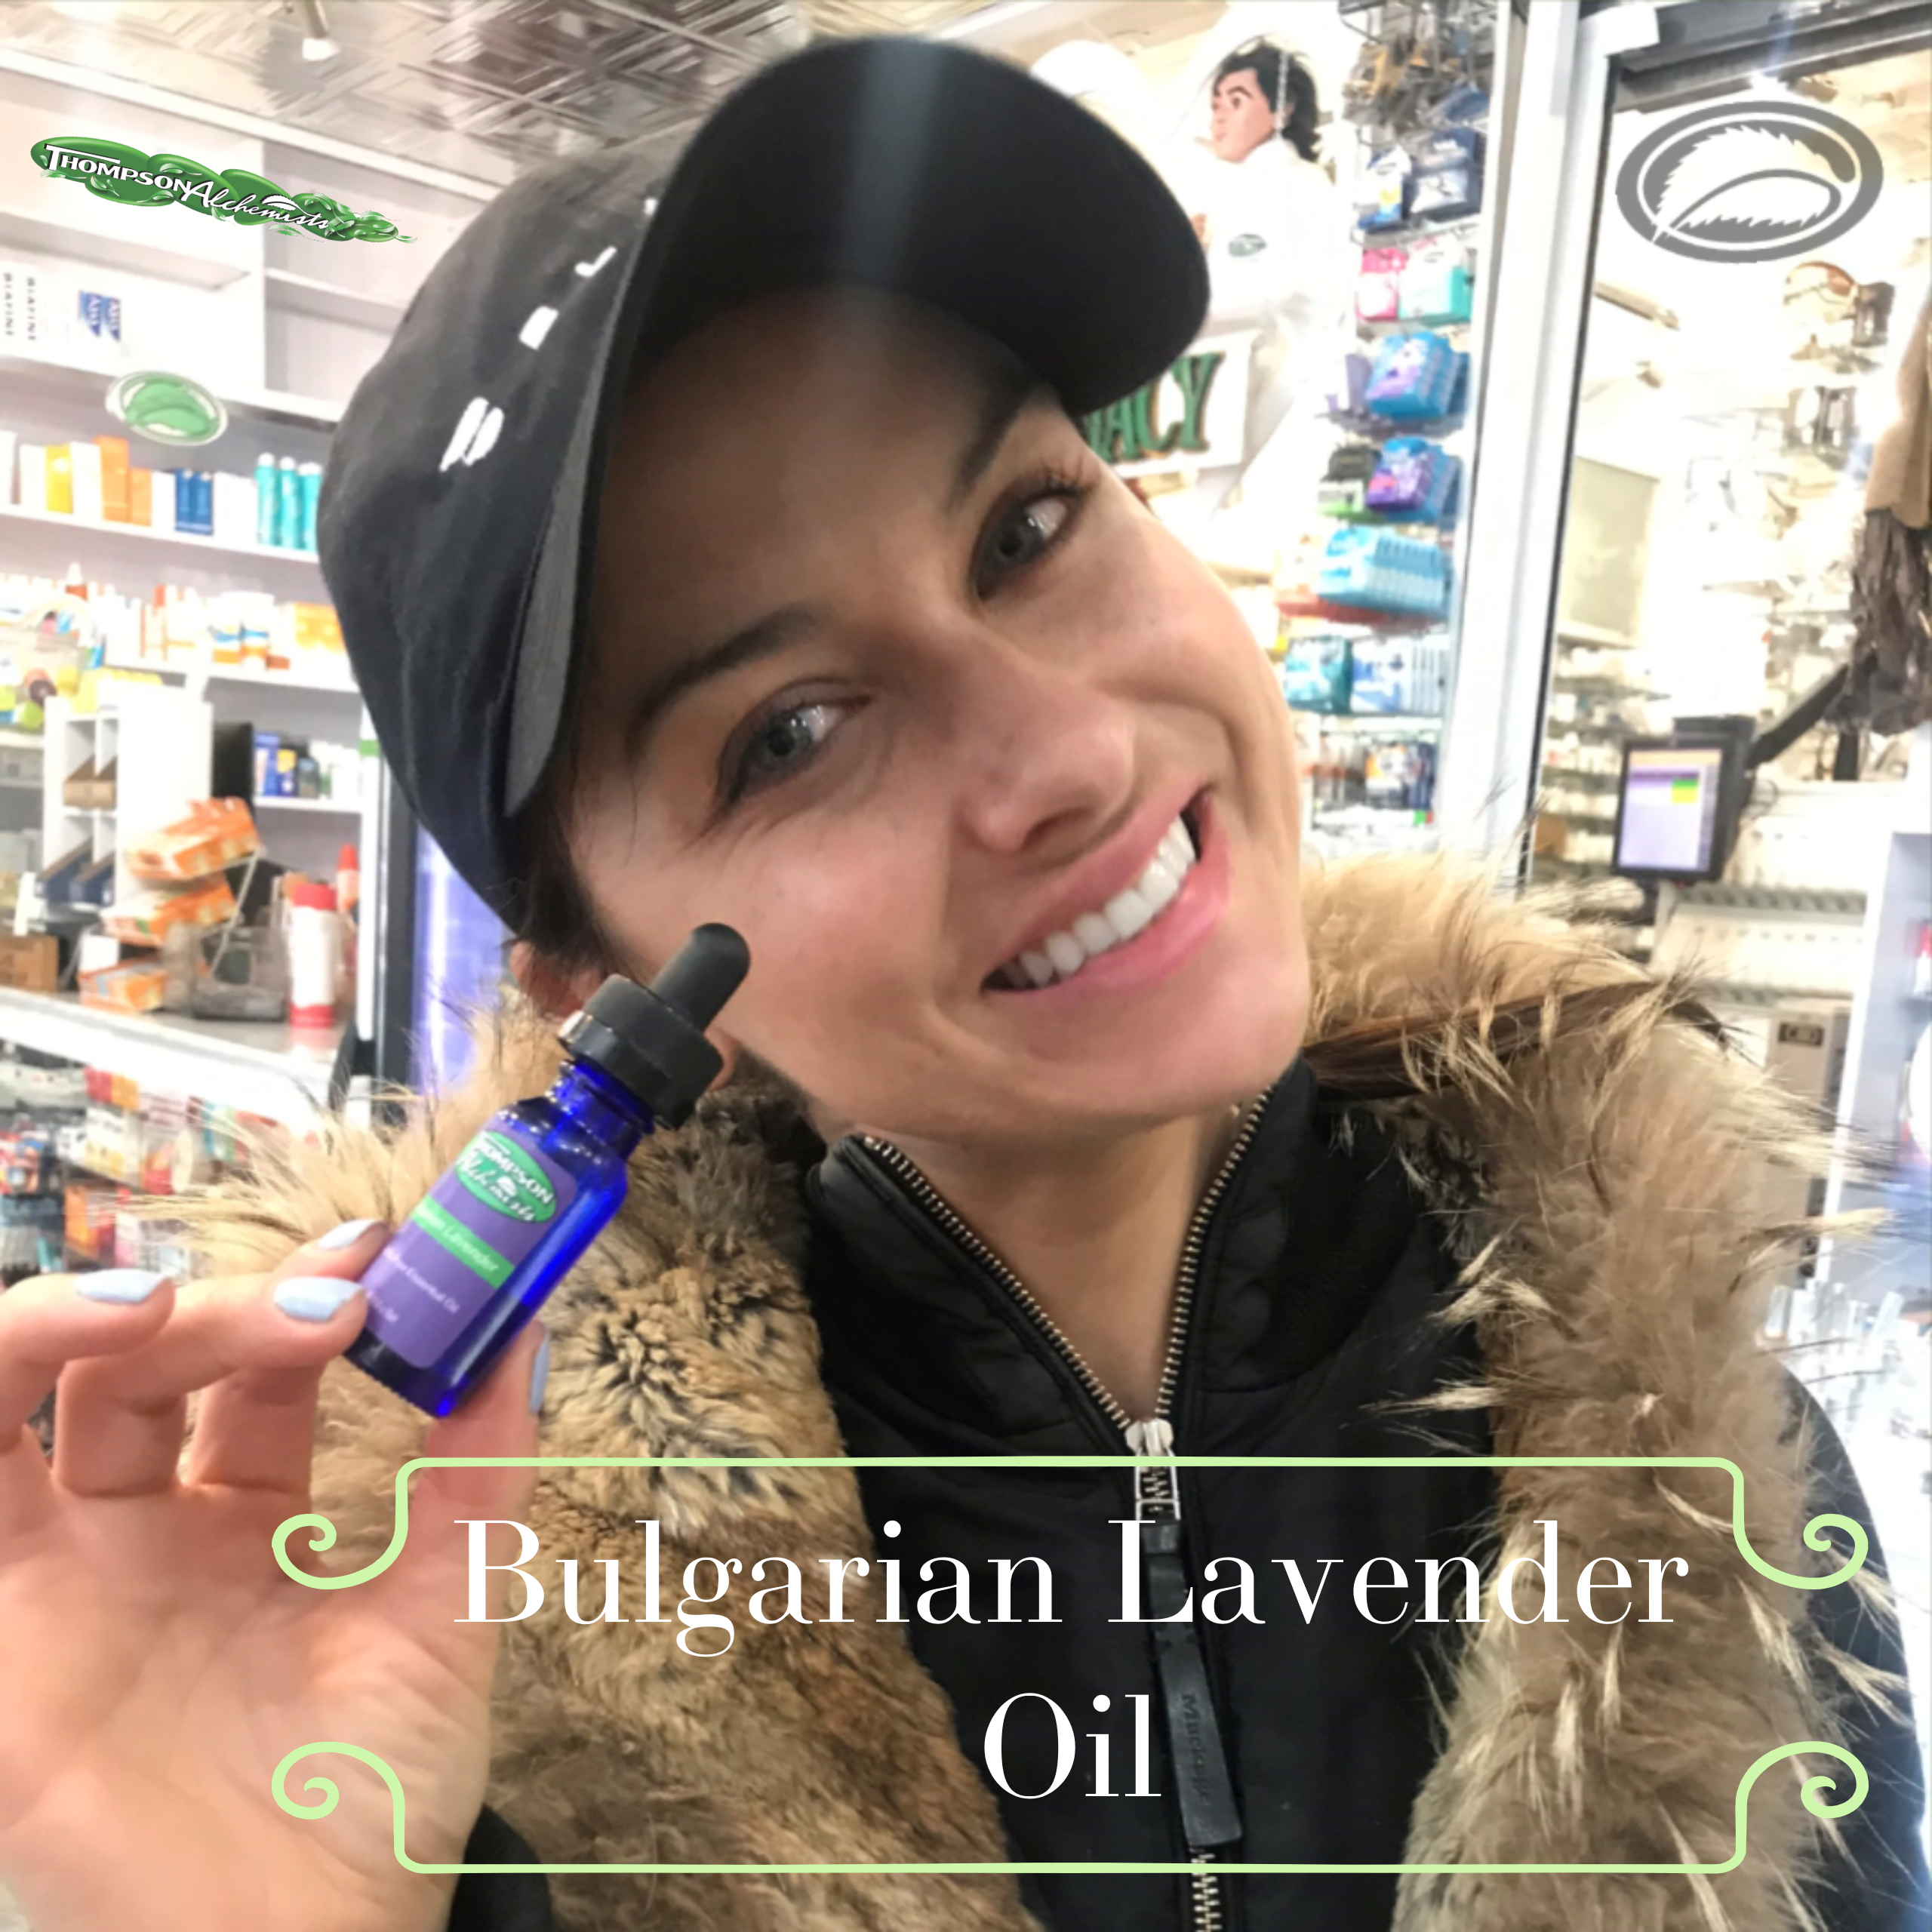 Thompson Alchemists Bulgarian lavender essential oil being held by thompson chemists customer in soho nyc store.